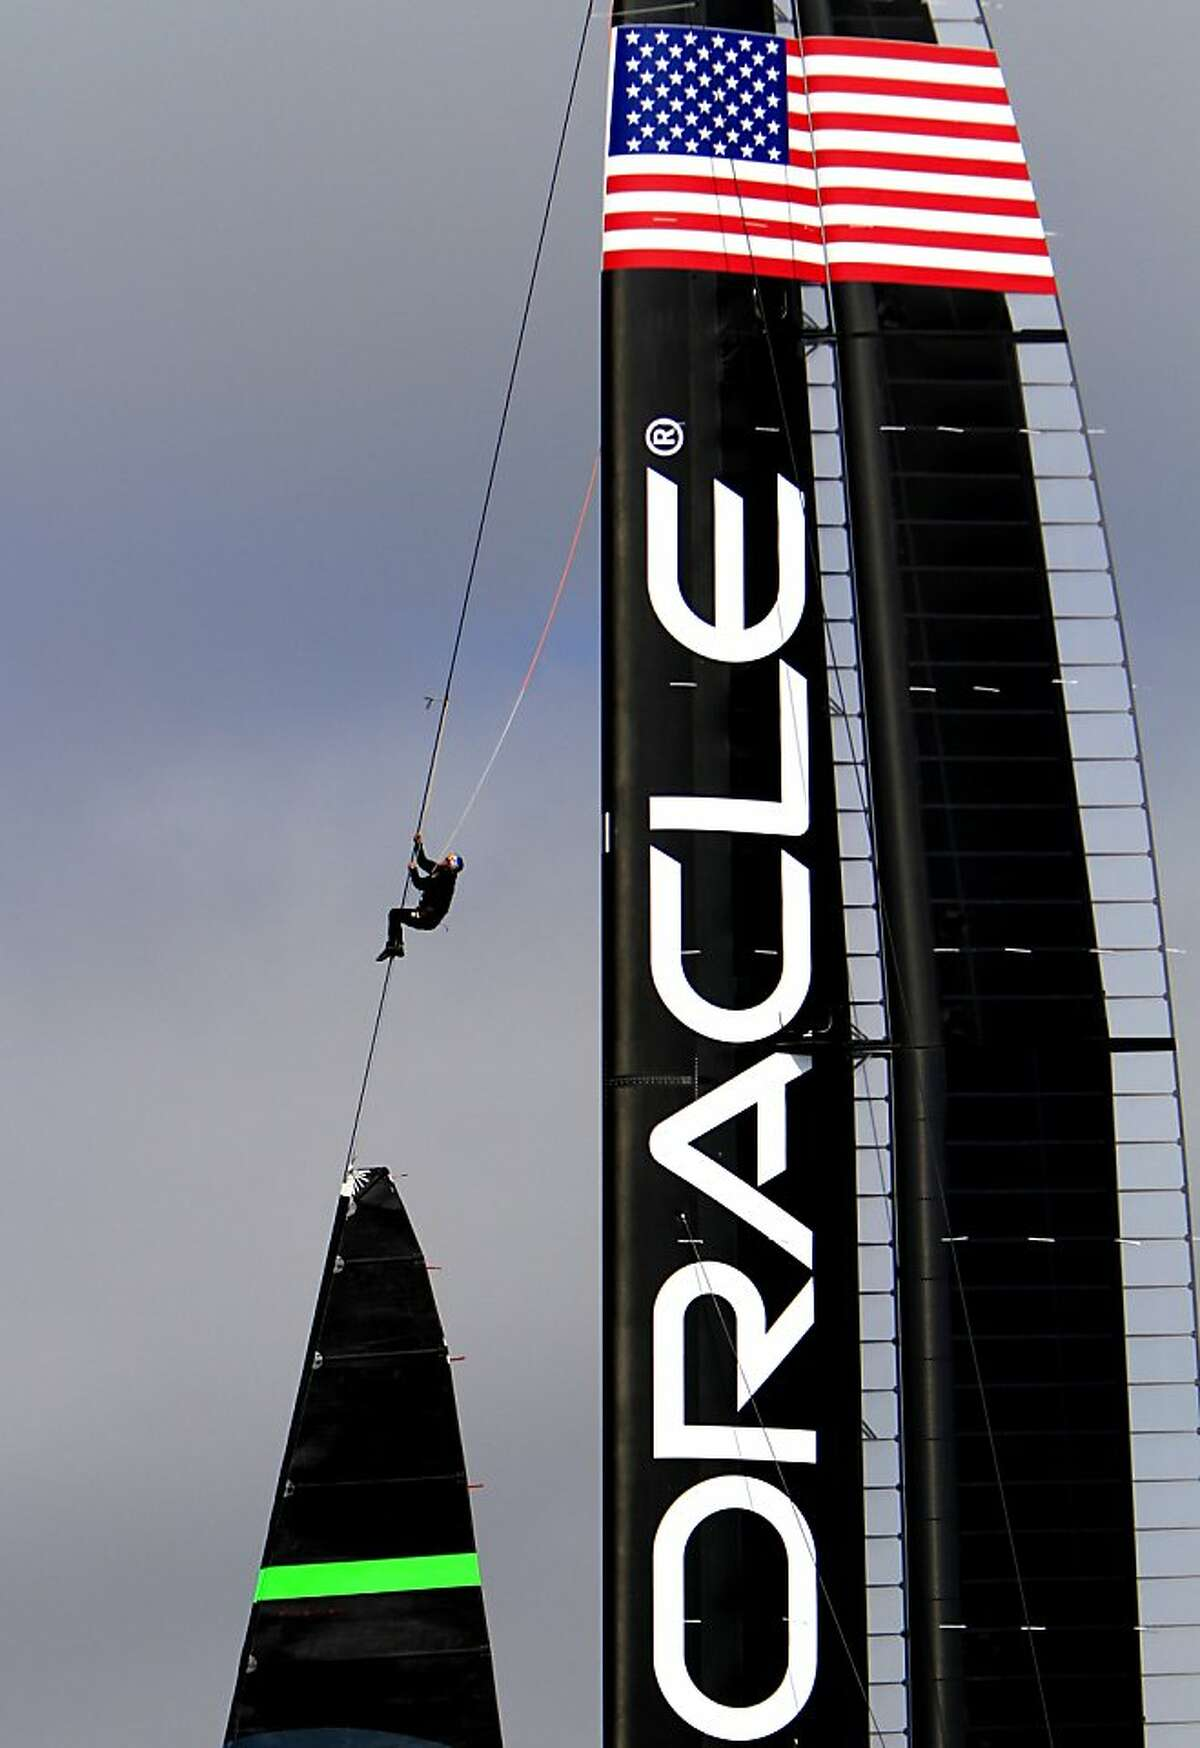 The Oracle team changes the sails while taking the new AC72 out for a test run in the bay in San Francisco, Calif., Friday, September 28, 2012.